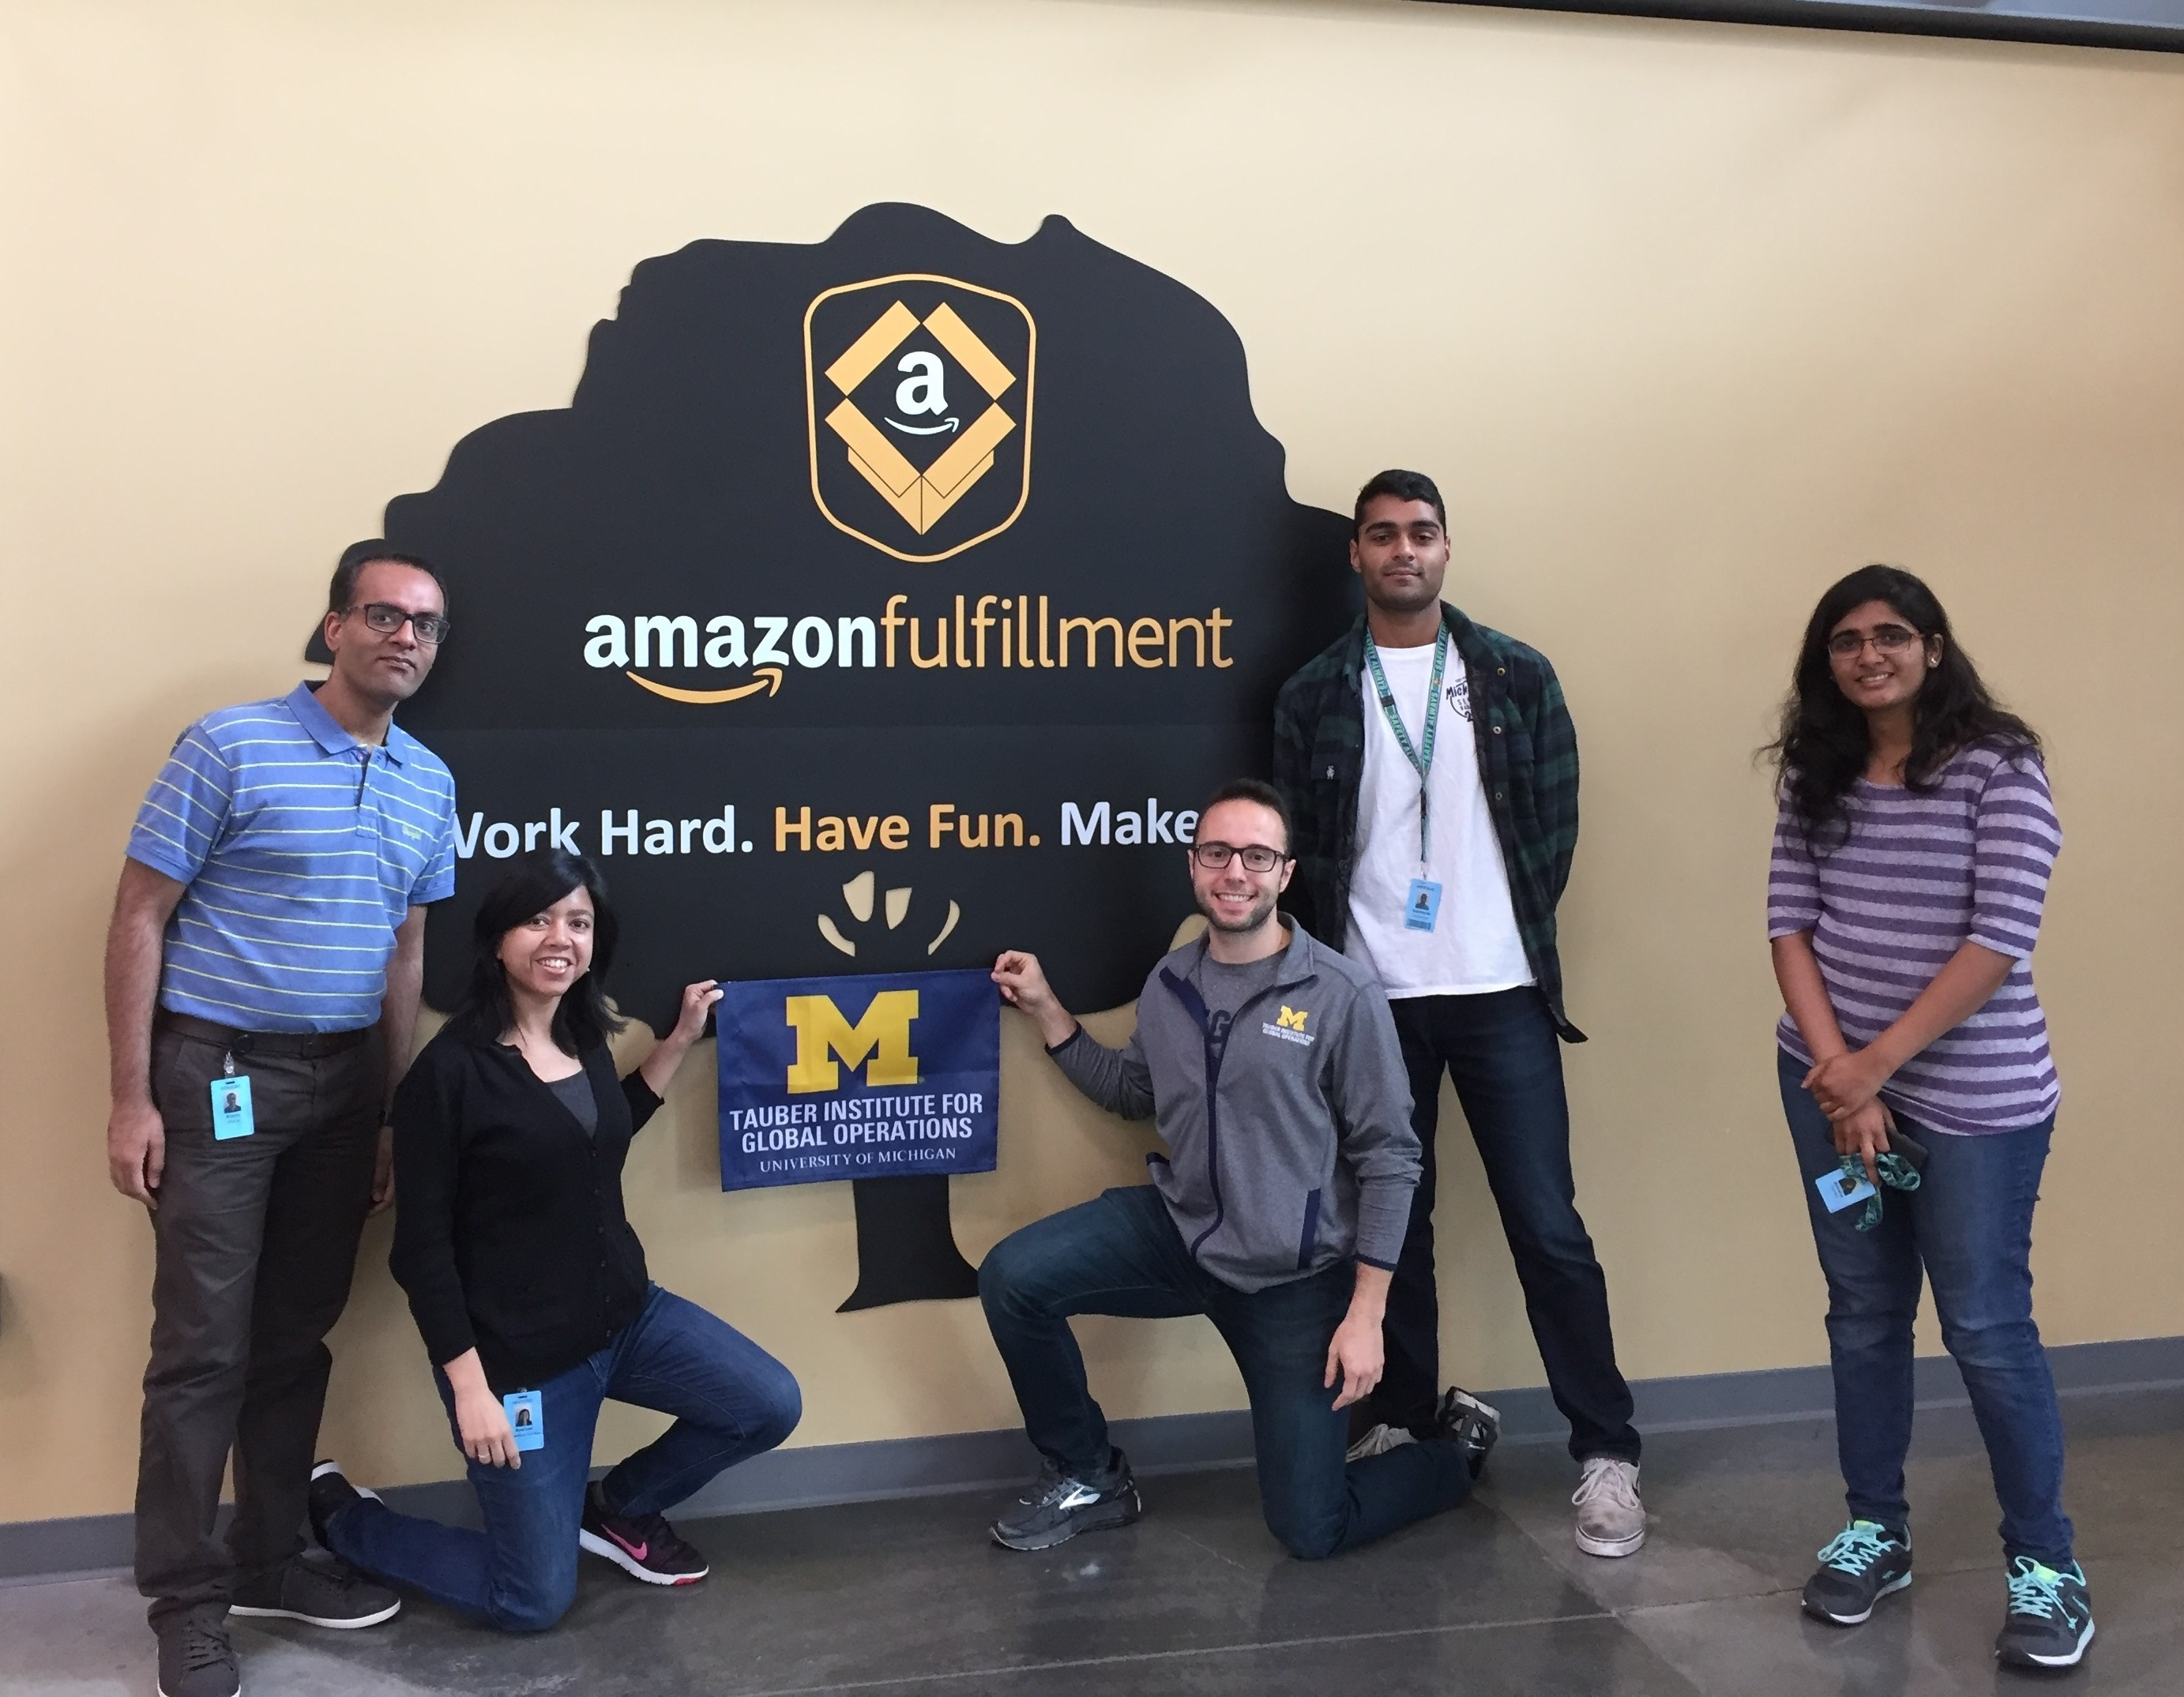 2017 Tauber Team Amazon Fulfillment